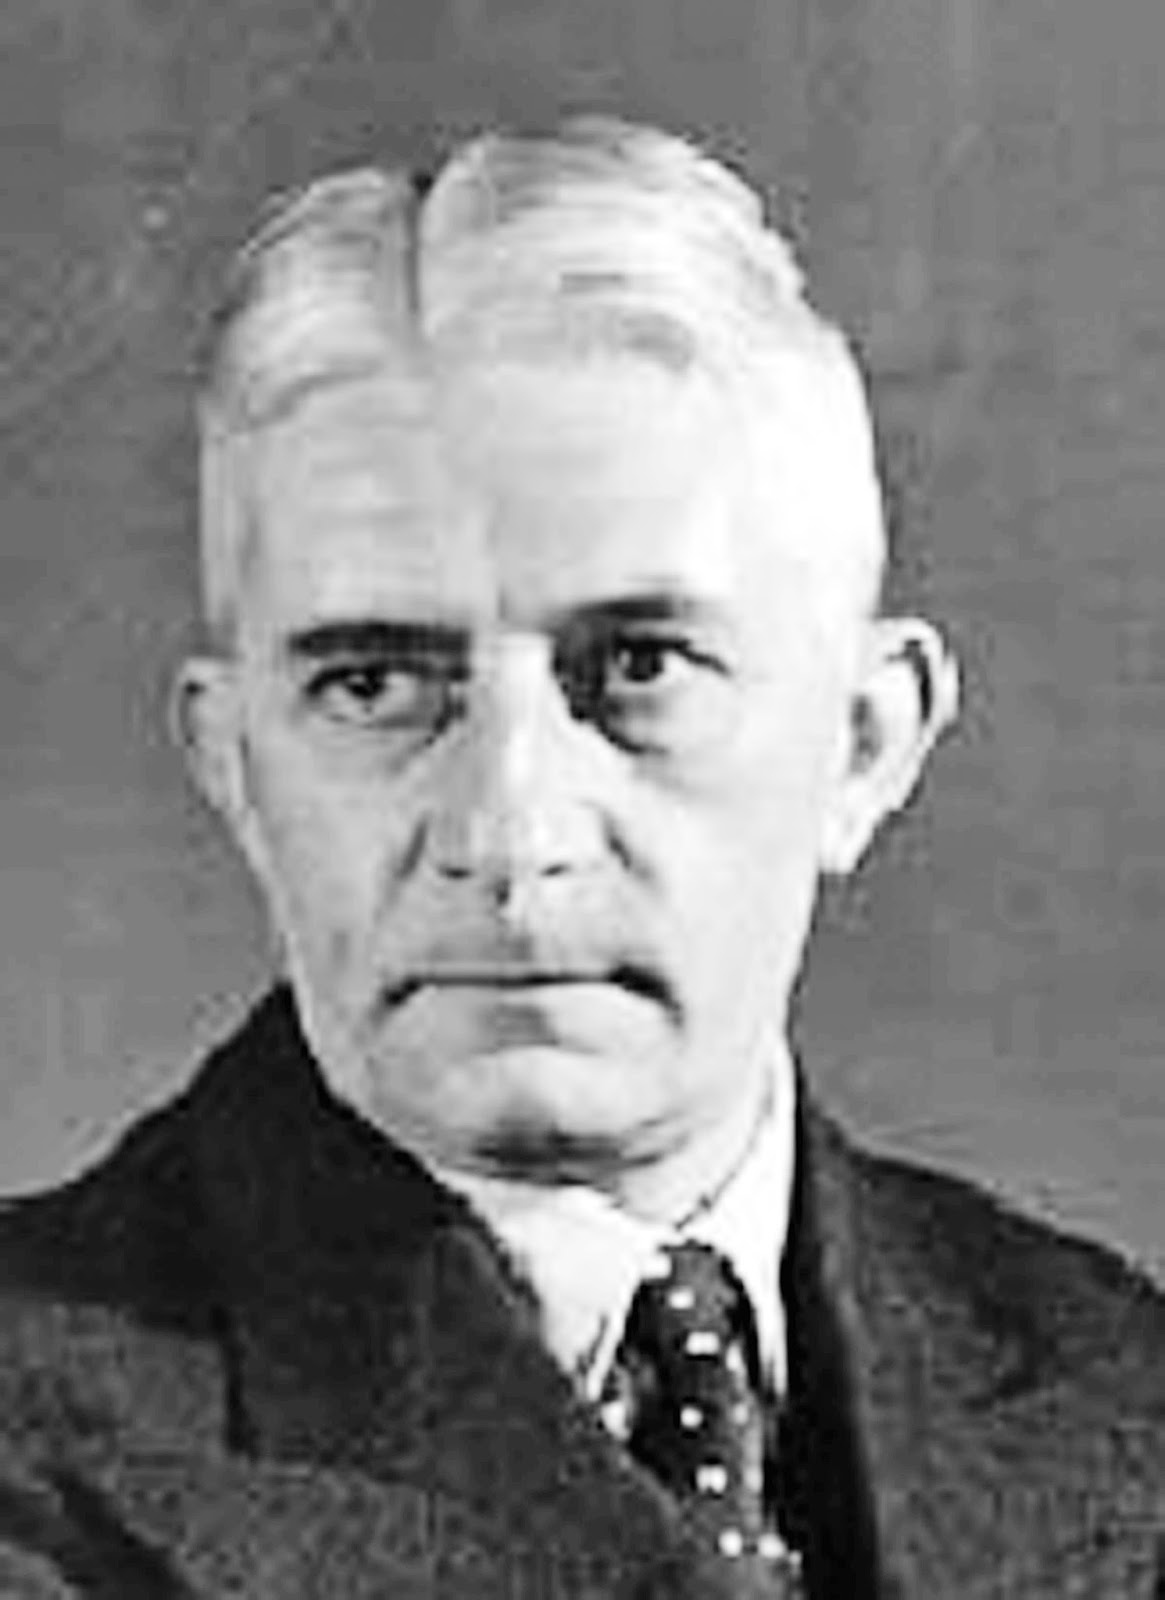 an introduction to the life of wolfgang kohler a gestalt psychologist 20102013 believed this is a journal kurt koffka (fig 1) responded to american psychologist in 1922 being one of the key founding.